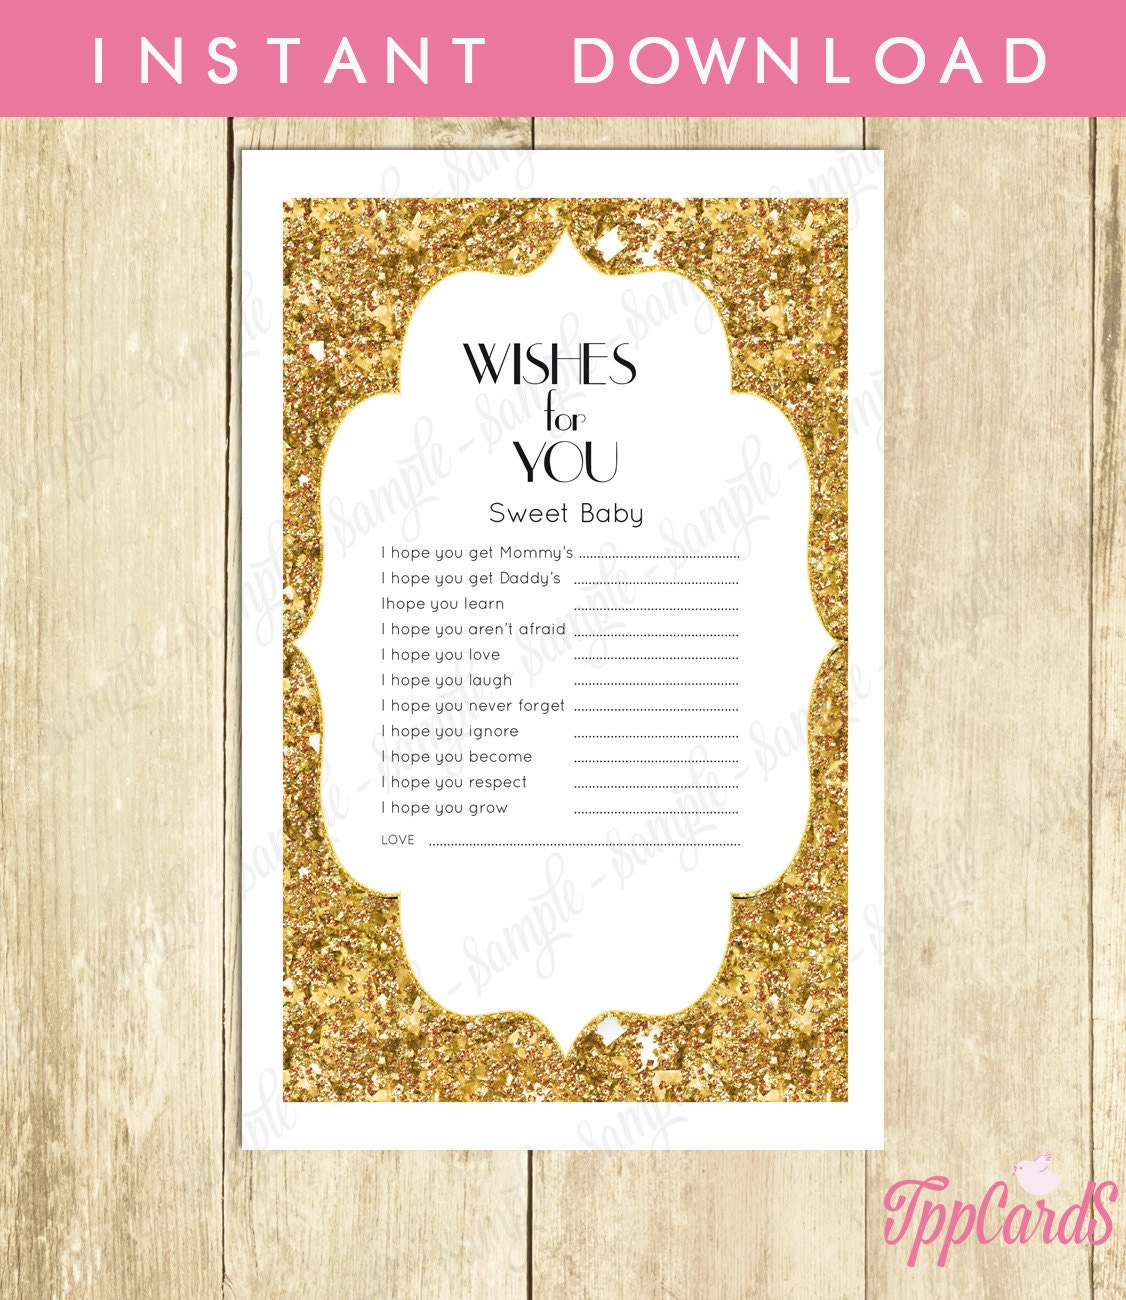 Instant Download Gold Glitter Baby Shower Games Glitter Wishes For